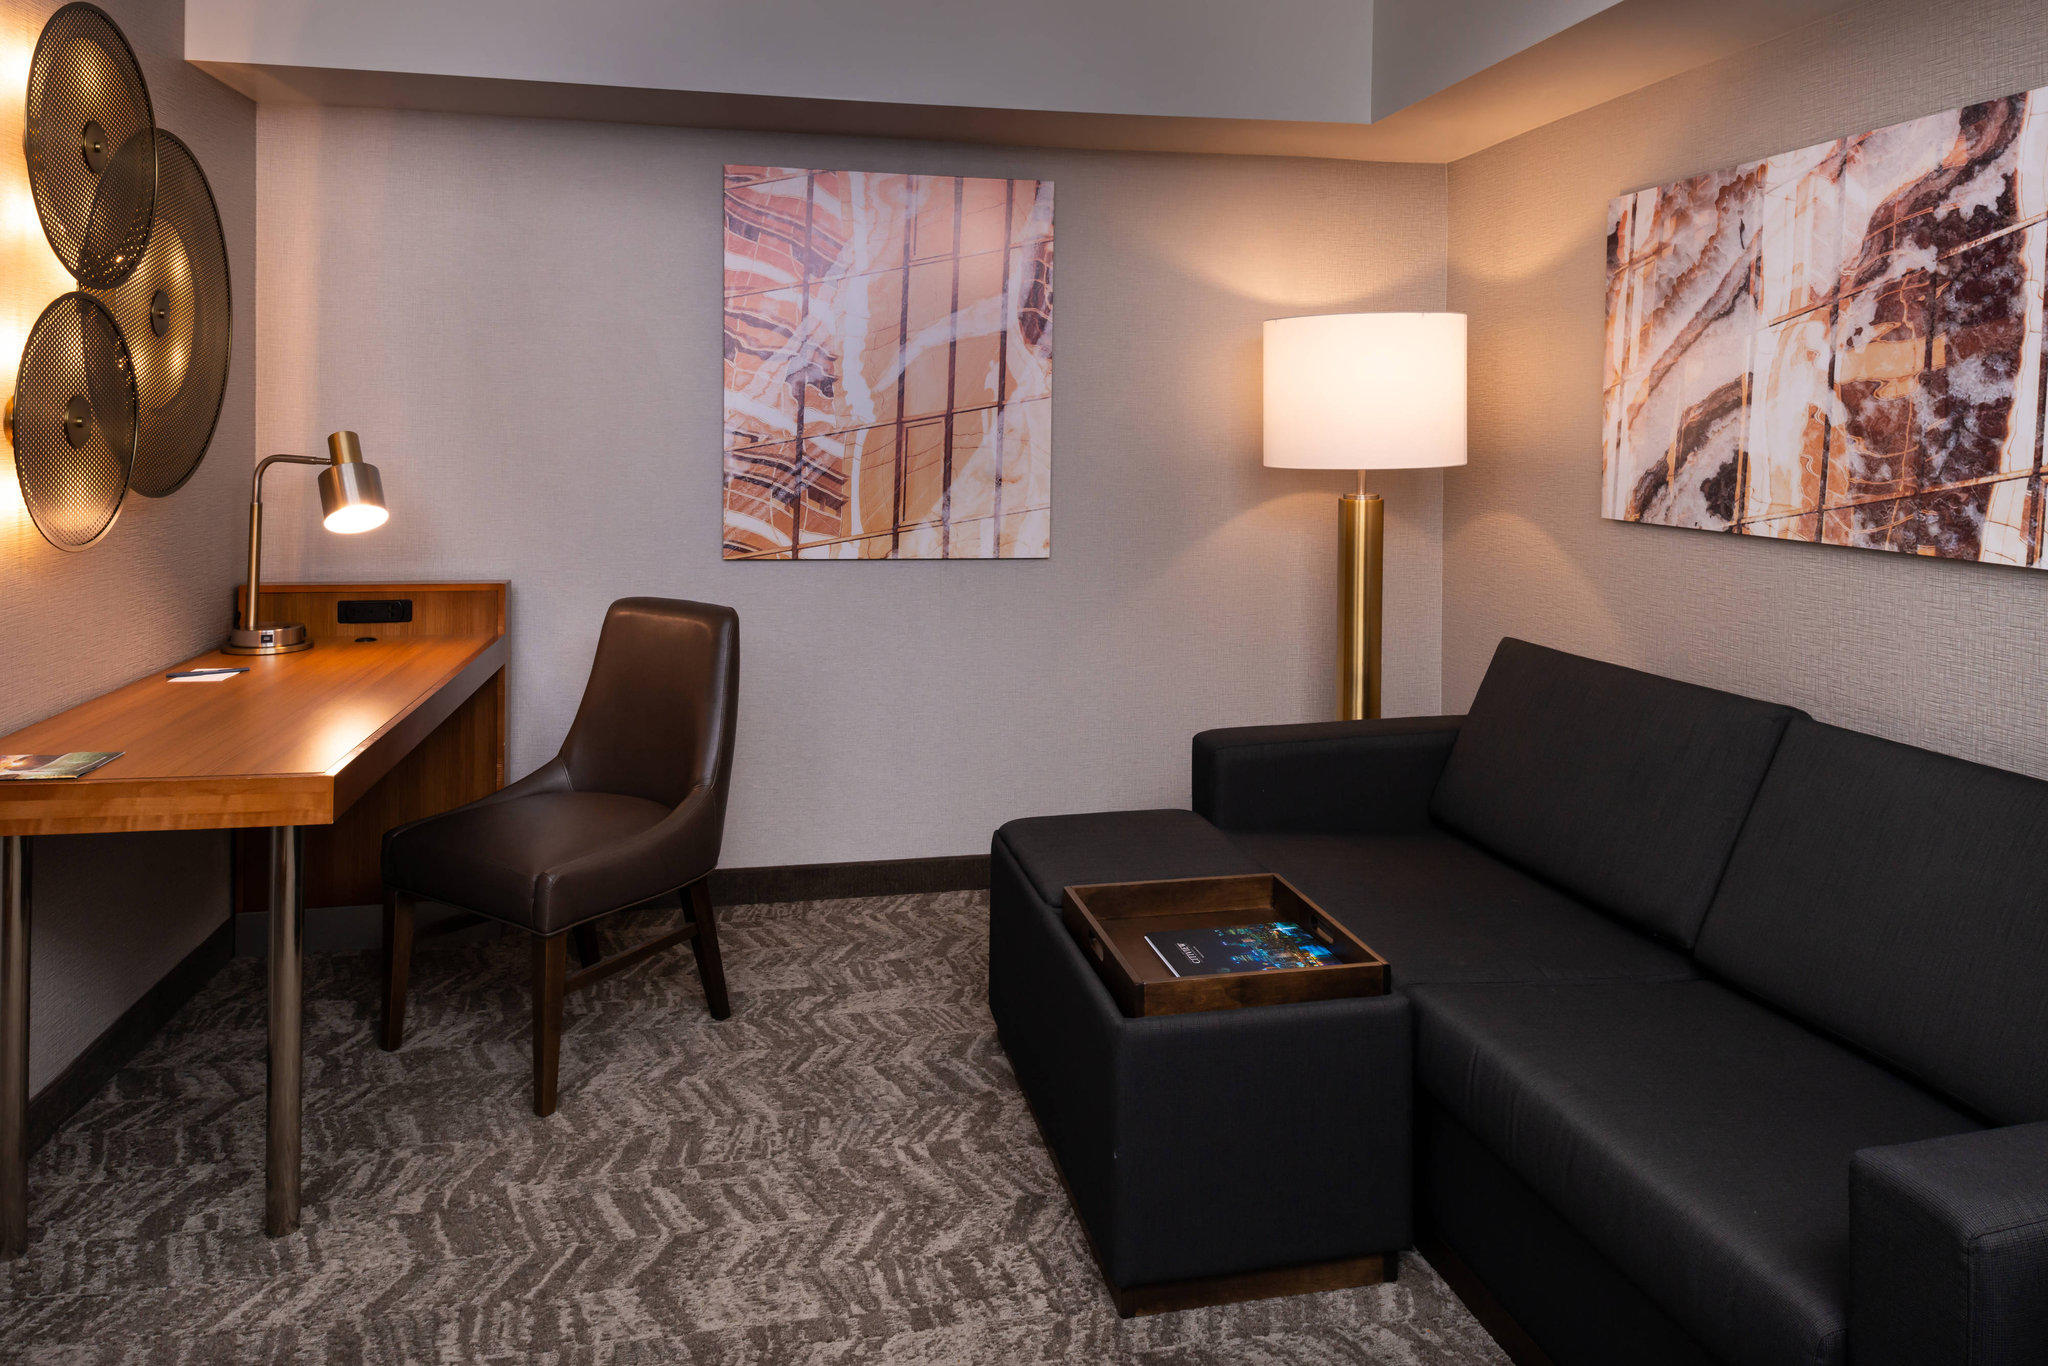 SpringHill Suites by Marriott Pittsburgh North Shore